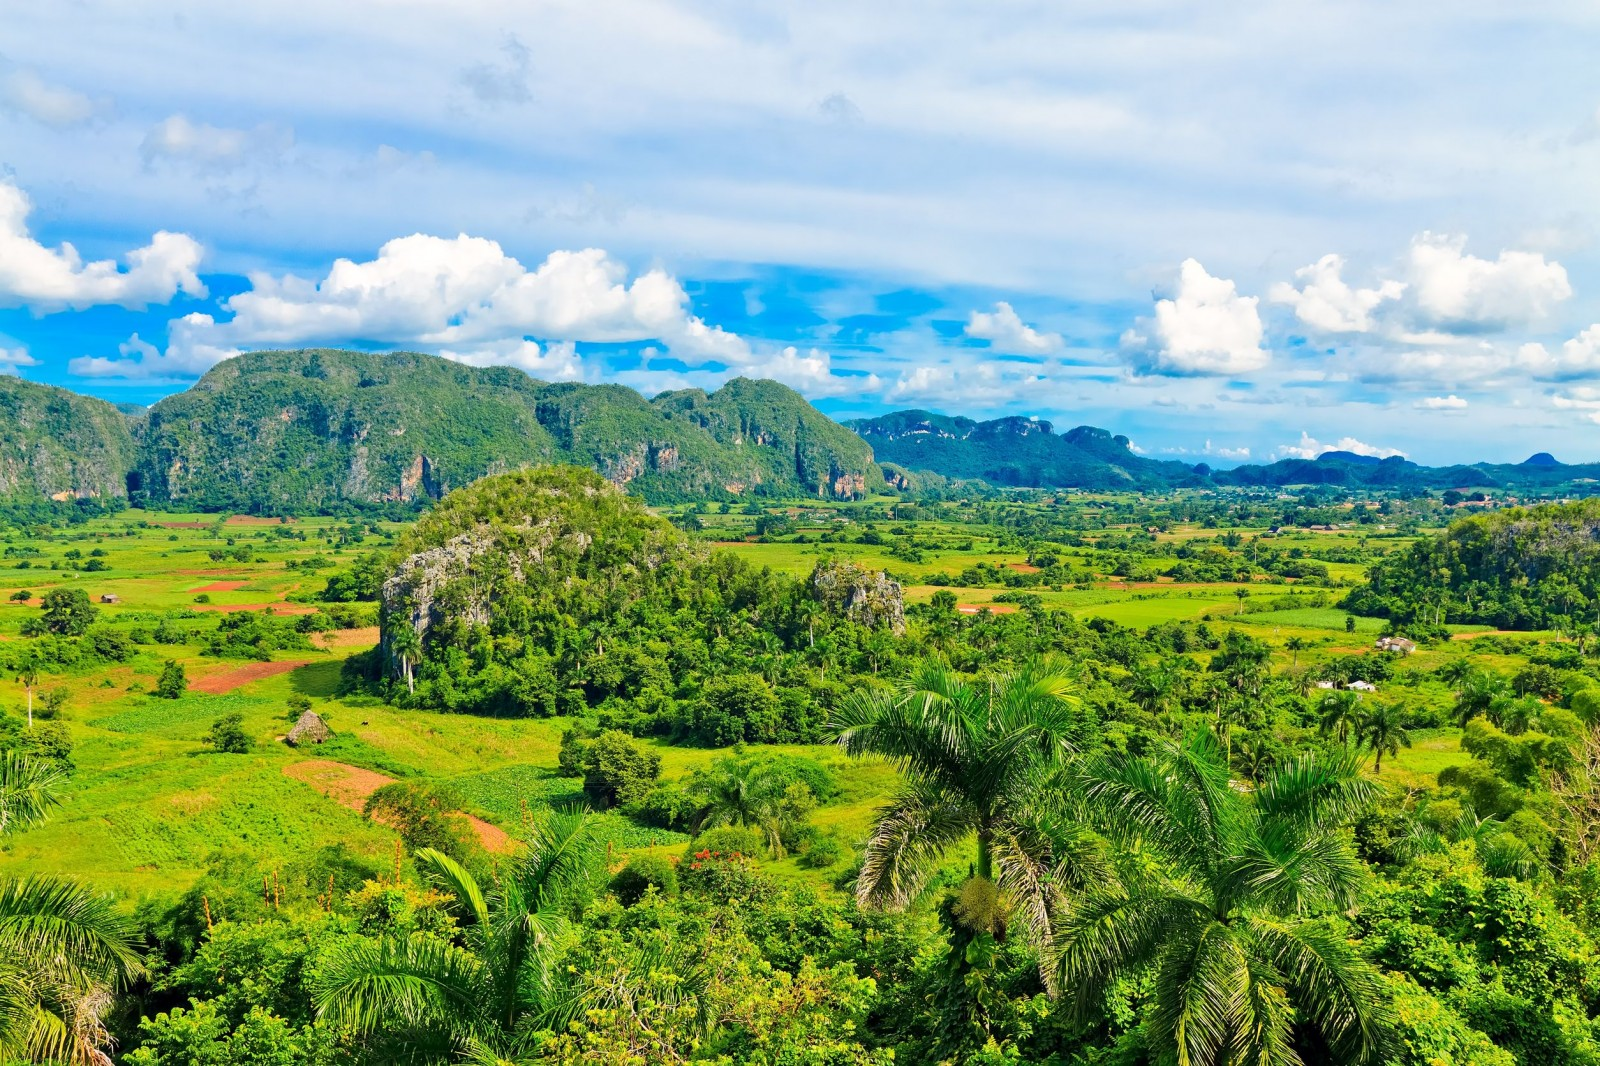 the-vinales-valley-in-cuba-a-famous-tourist-destination-and-a-major-tobacco-growing-area-1600x1066